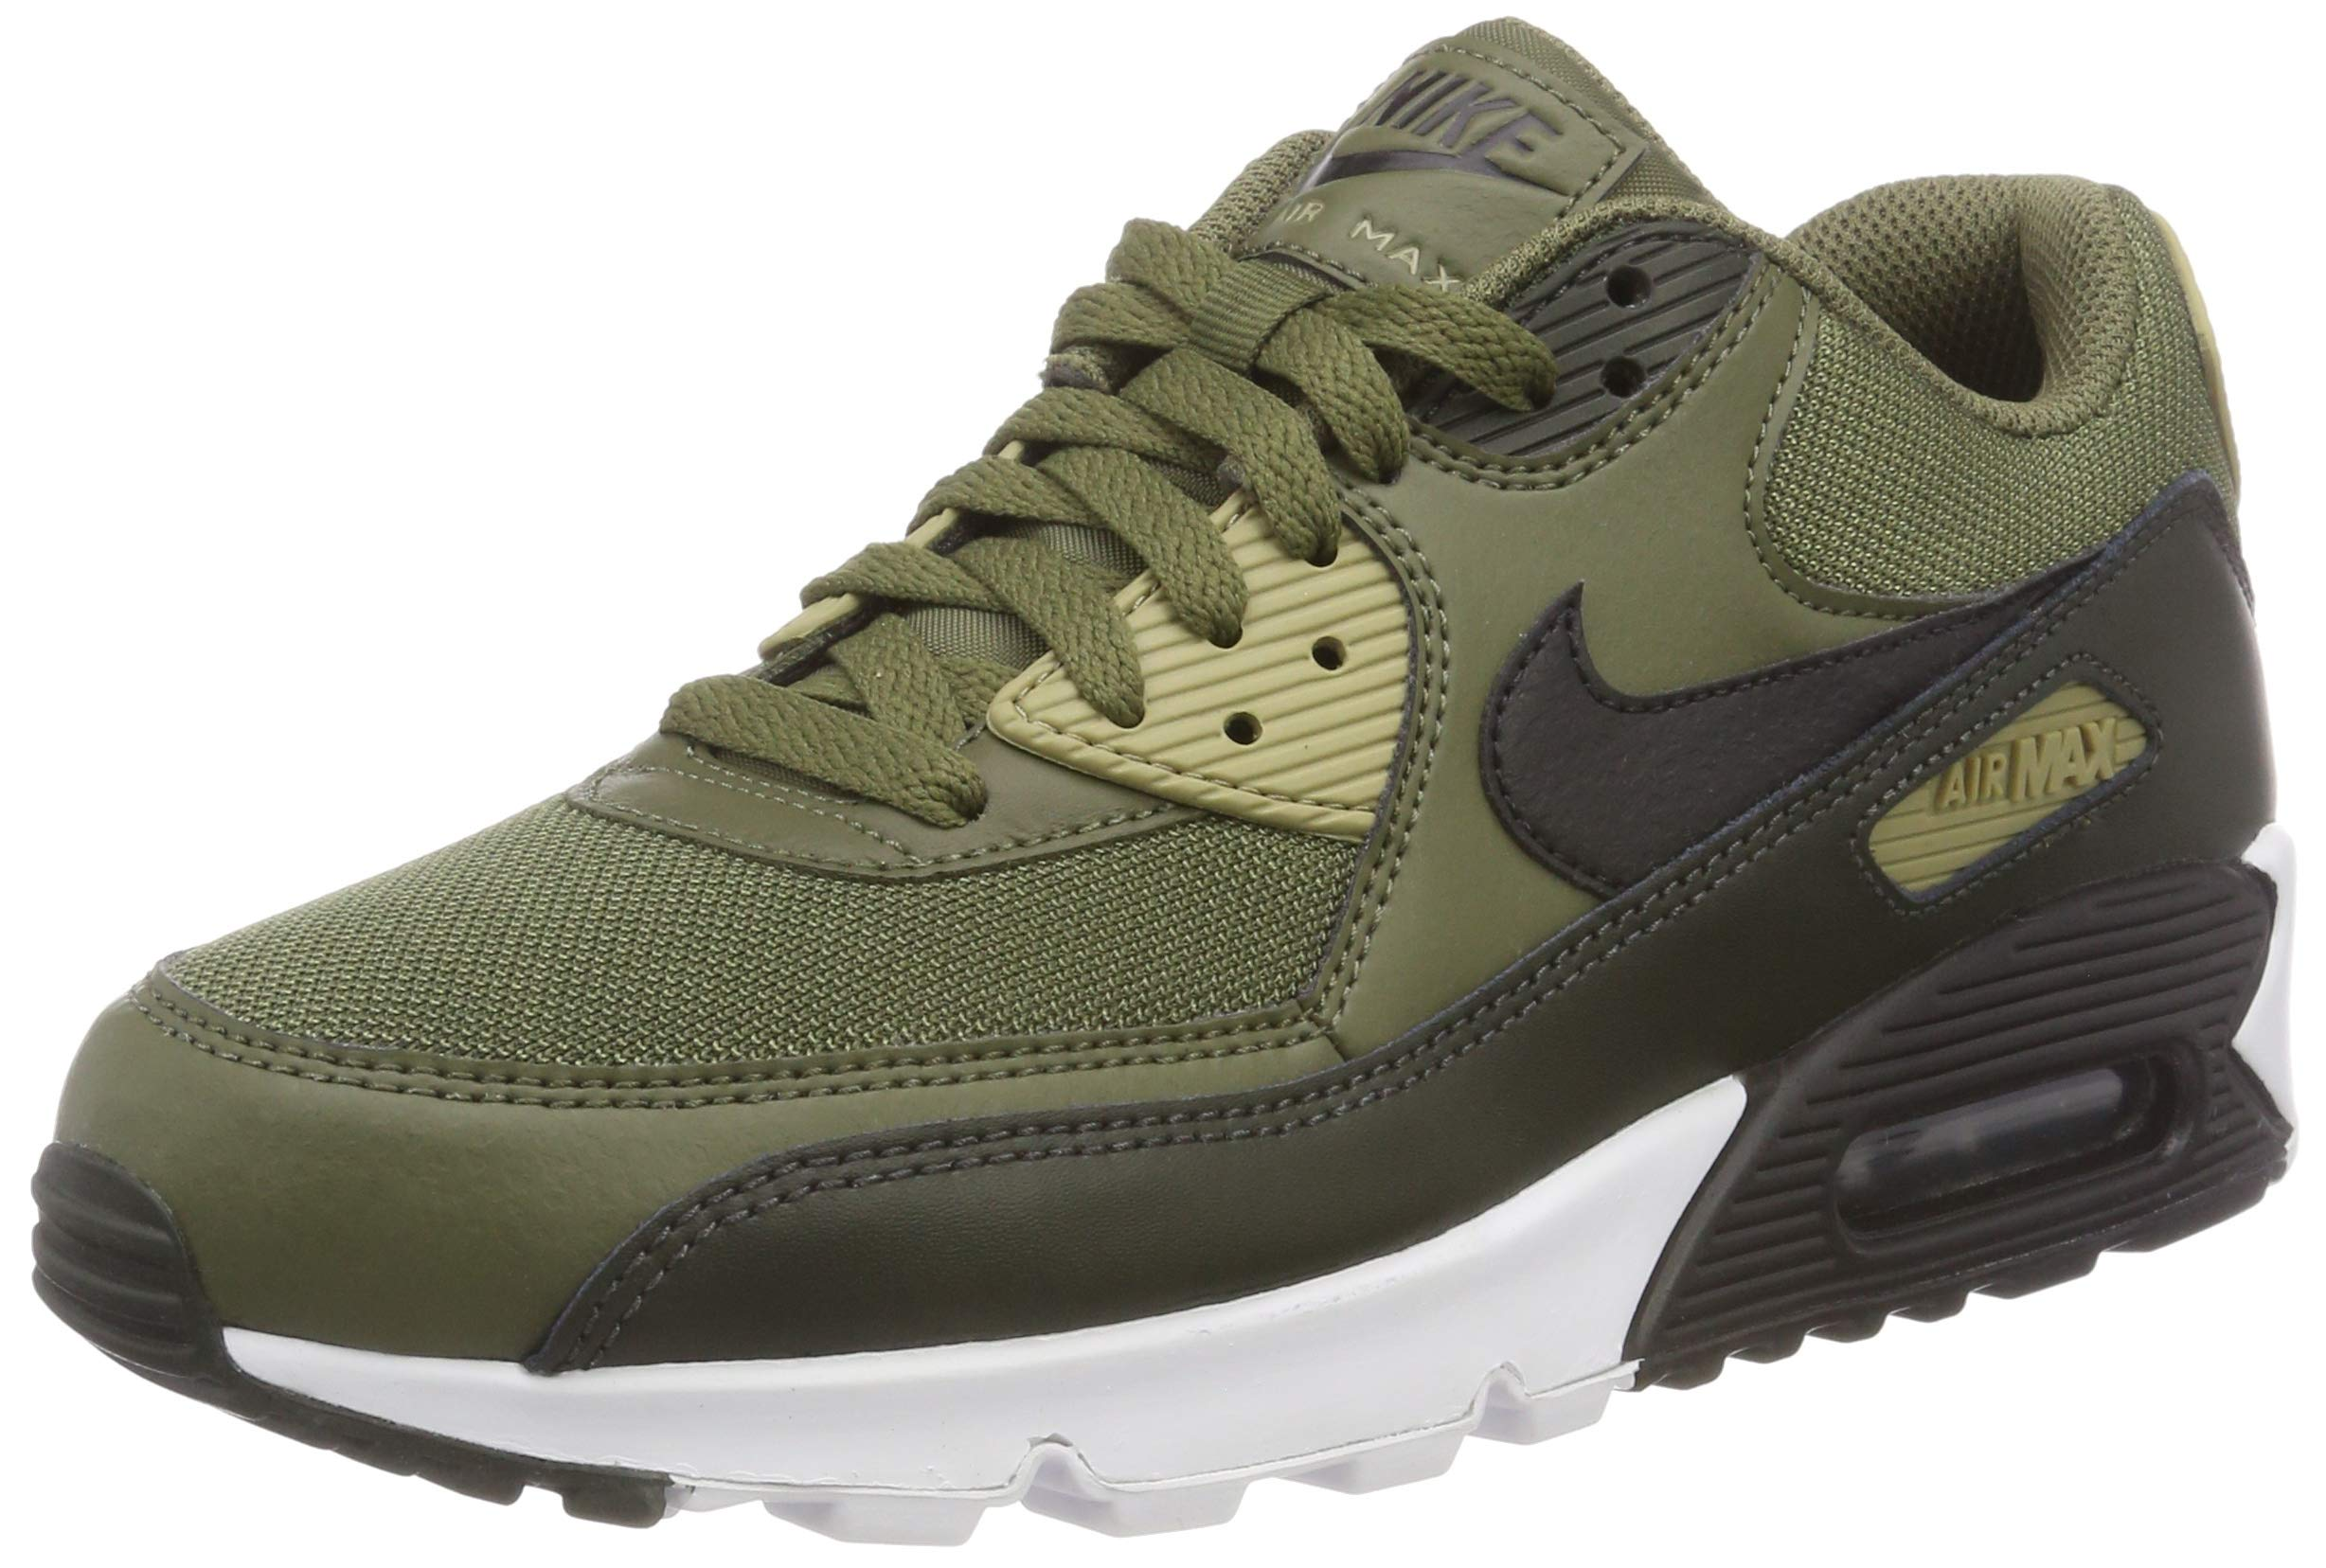 detailed look 3772f ce4ef Nike Mens Air Max 90 Essential Running Shoes Medium Olive/Black/Sequoia  AJ1285-201 Size 9